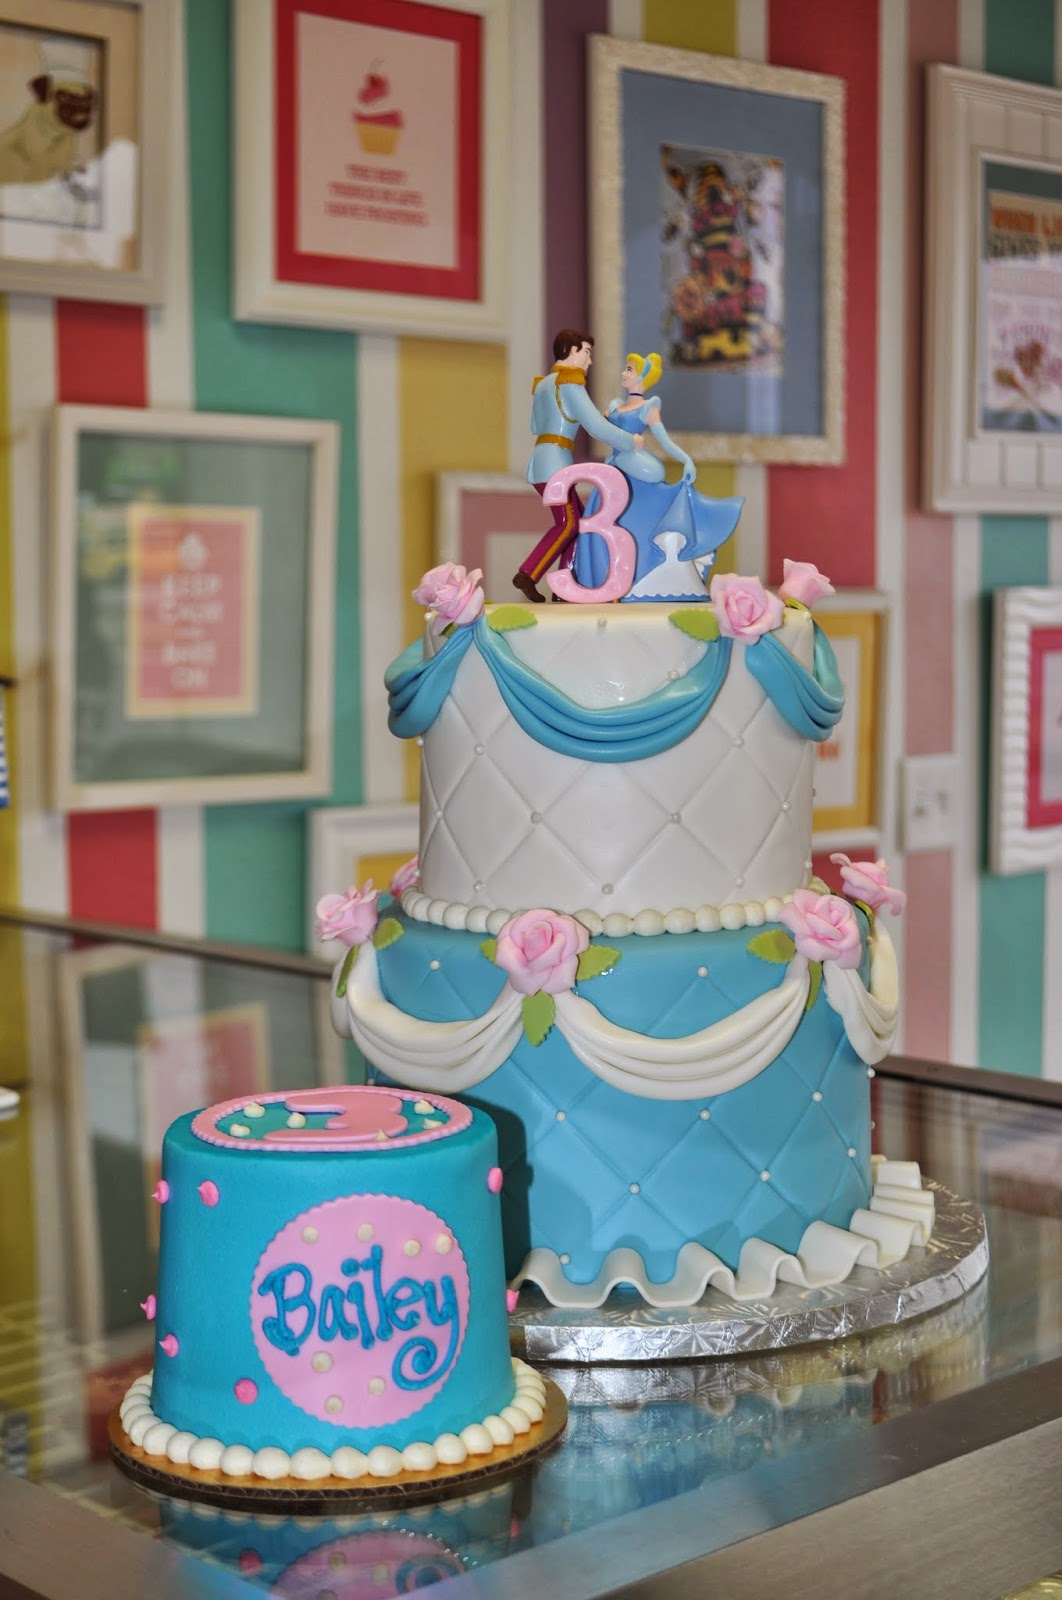 Owner And Cake Artist : Leah s Sweet Treats: Custom Cakes Sprinkle Cakes Birthday ...